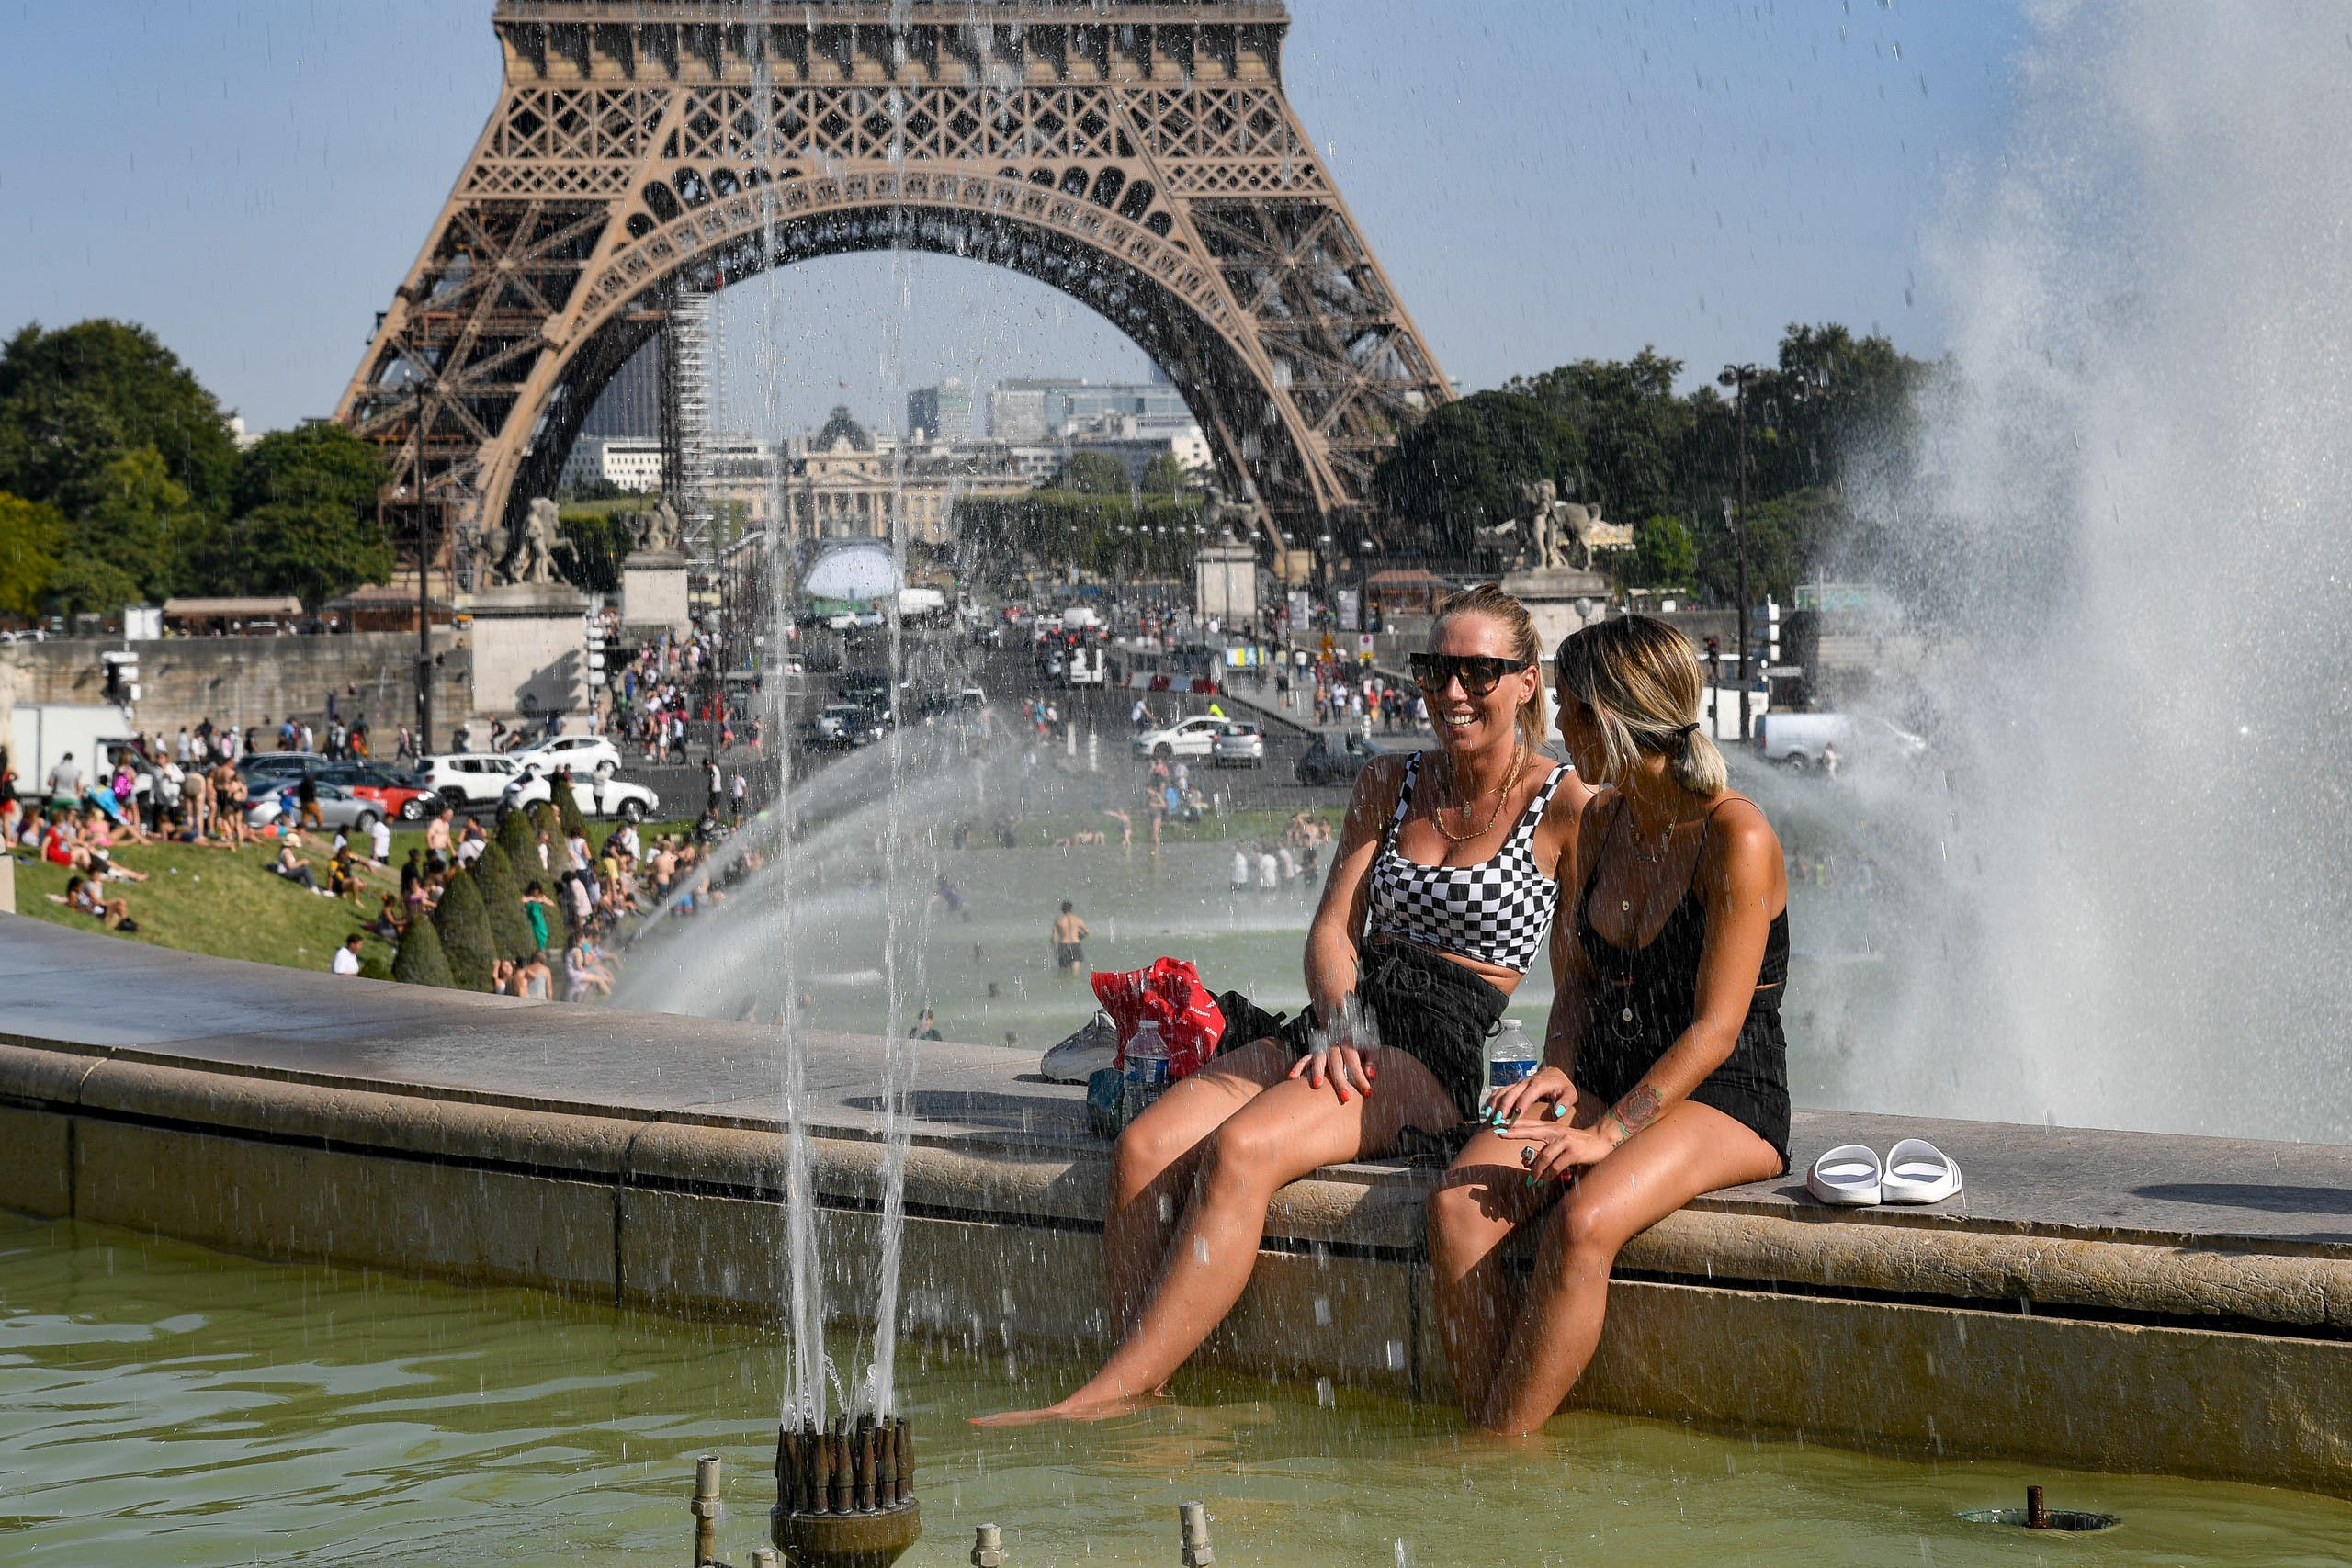 Women cool off at the Trocadero Fountains next to the Eiffel Tower in Paris as a new heatwave hits Europe. (AFP)